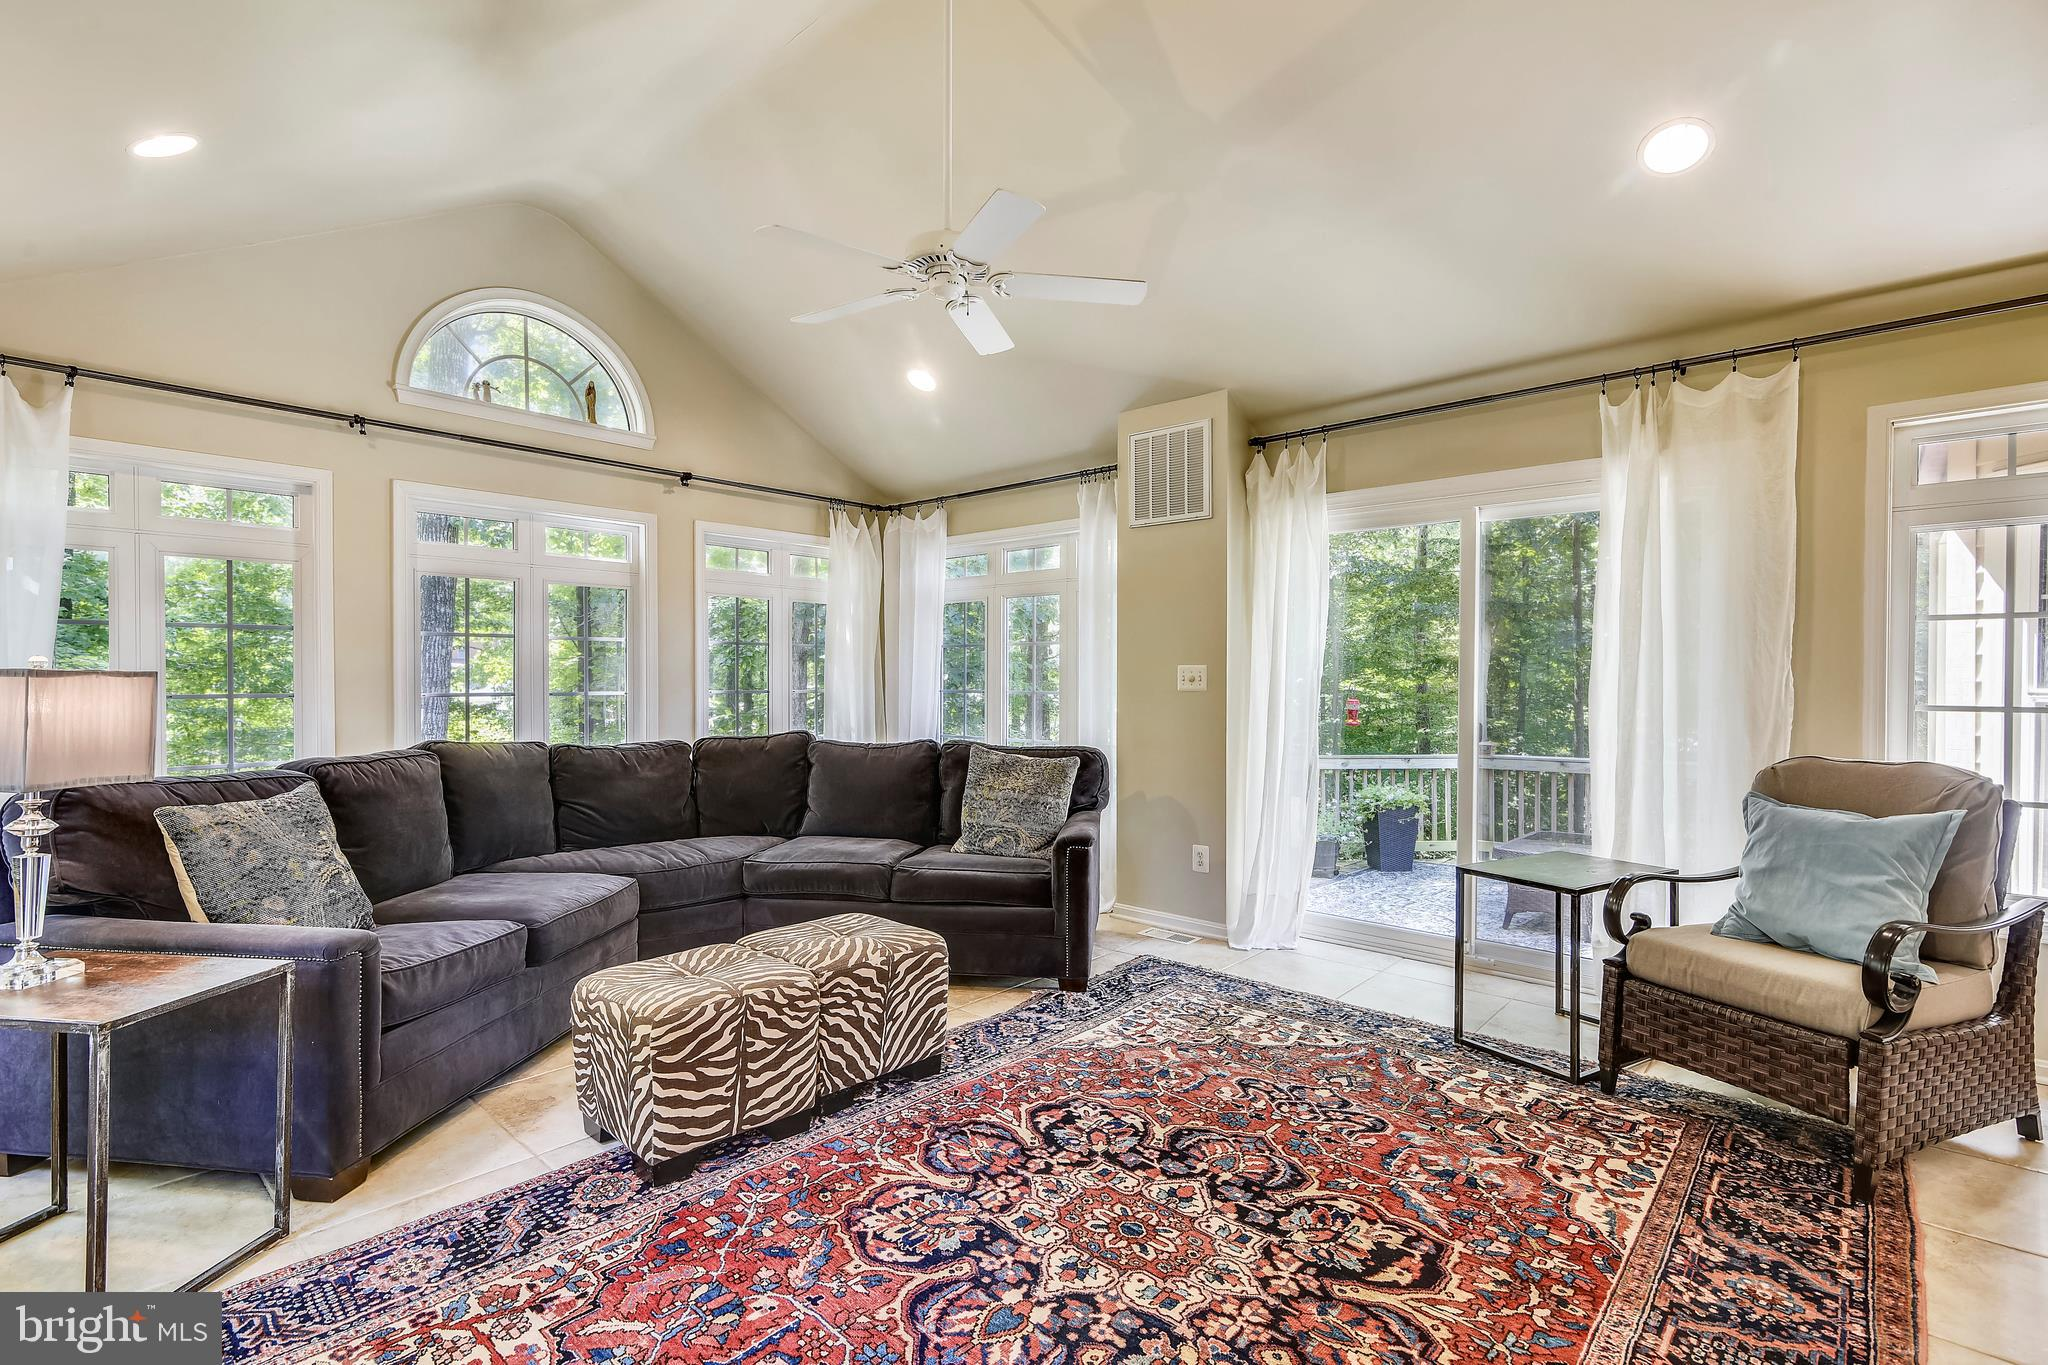 4665 TIMBER RIDGE DRIVE, DUMFRIES, VA 22025